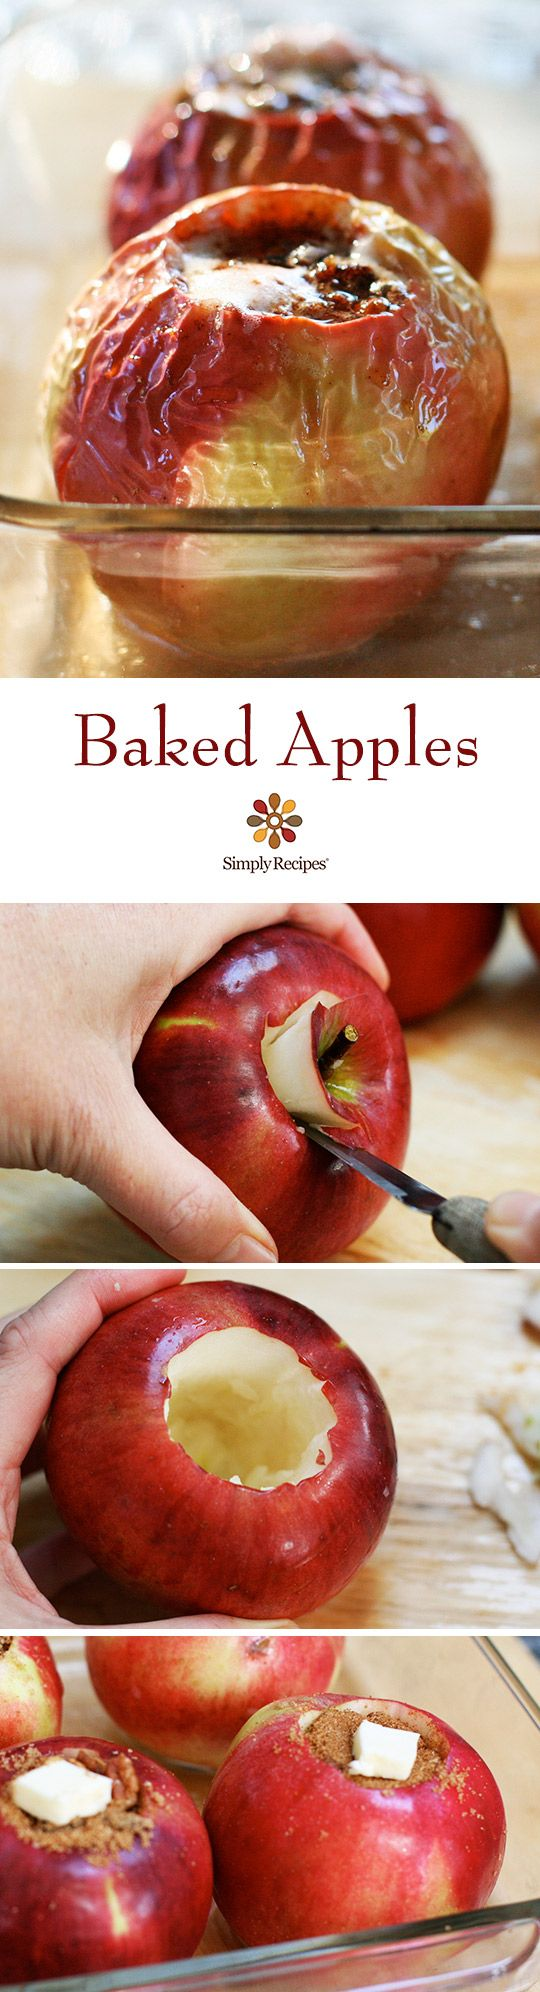 Baked Apples ~ Classic baked apples filled with pecans ...